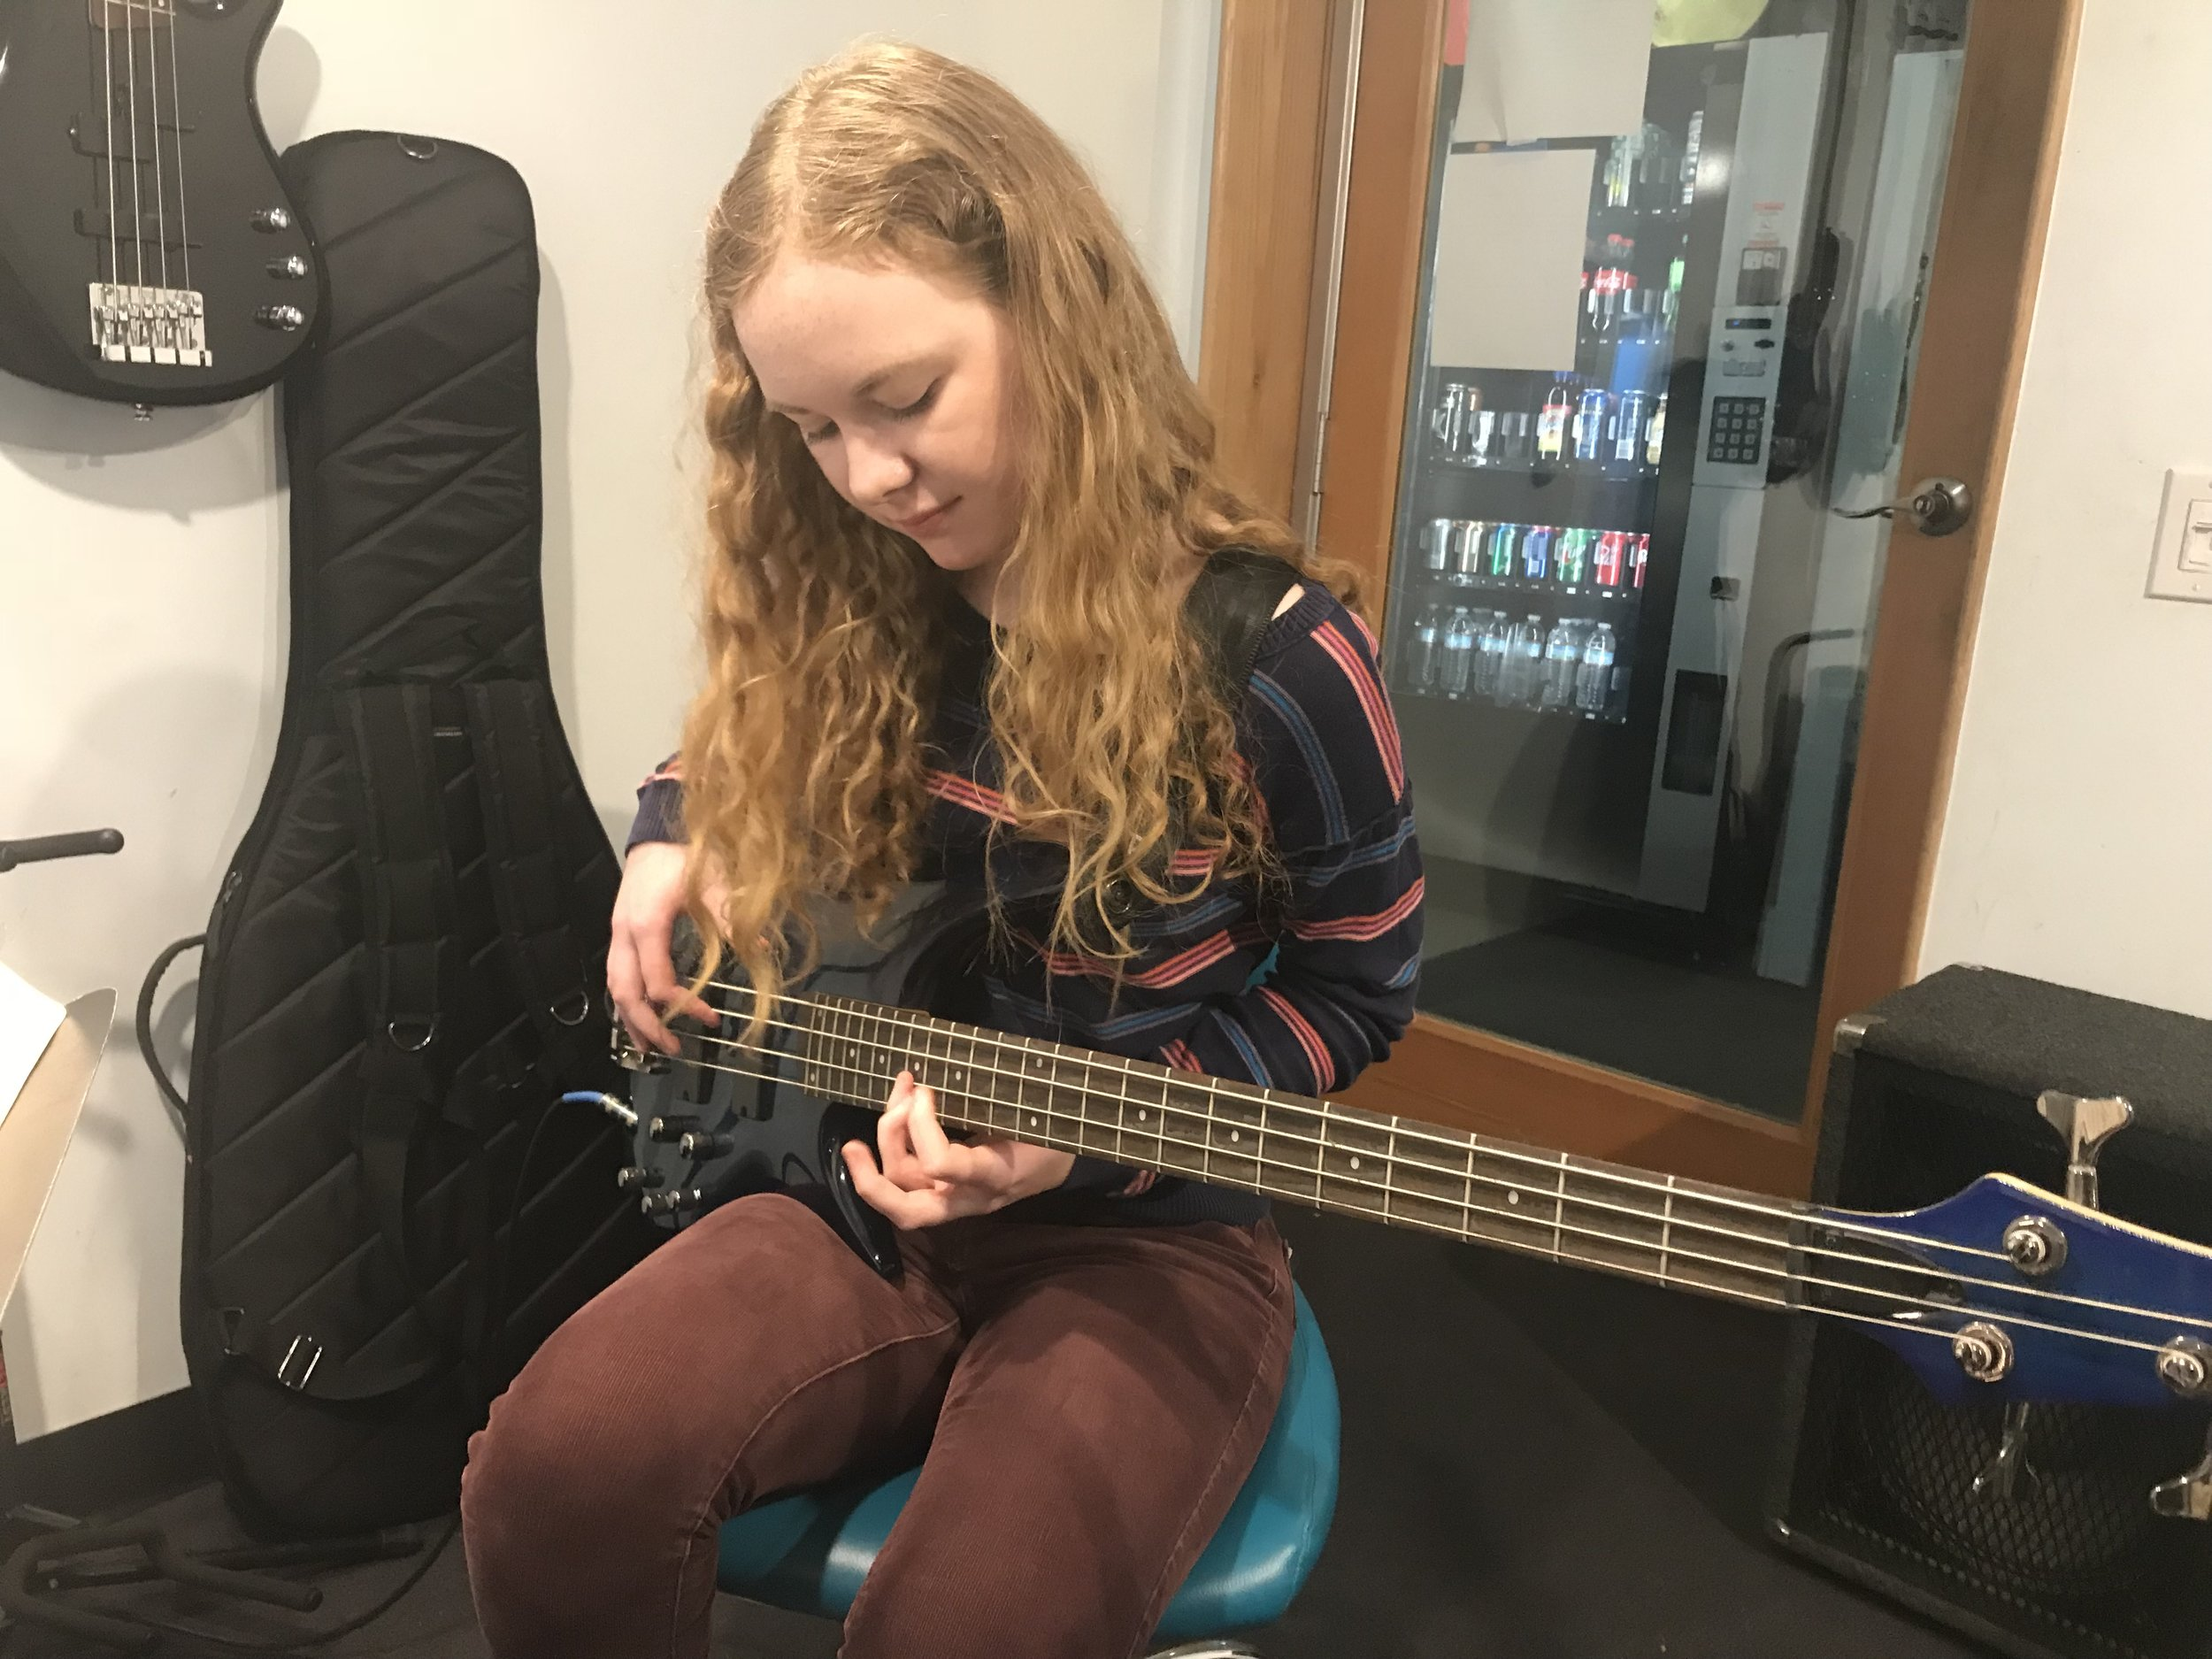 Katie Harms - Katie is going to LACM- The Los Angeles College of Music in Pasadena, CA. Her emphasis will be in composition. She is truly a powerhouse. She sings, plays piano, guitar and she's a killer bassist. There's nothing she can't do.